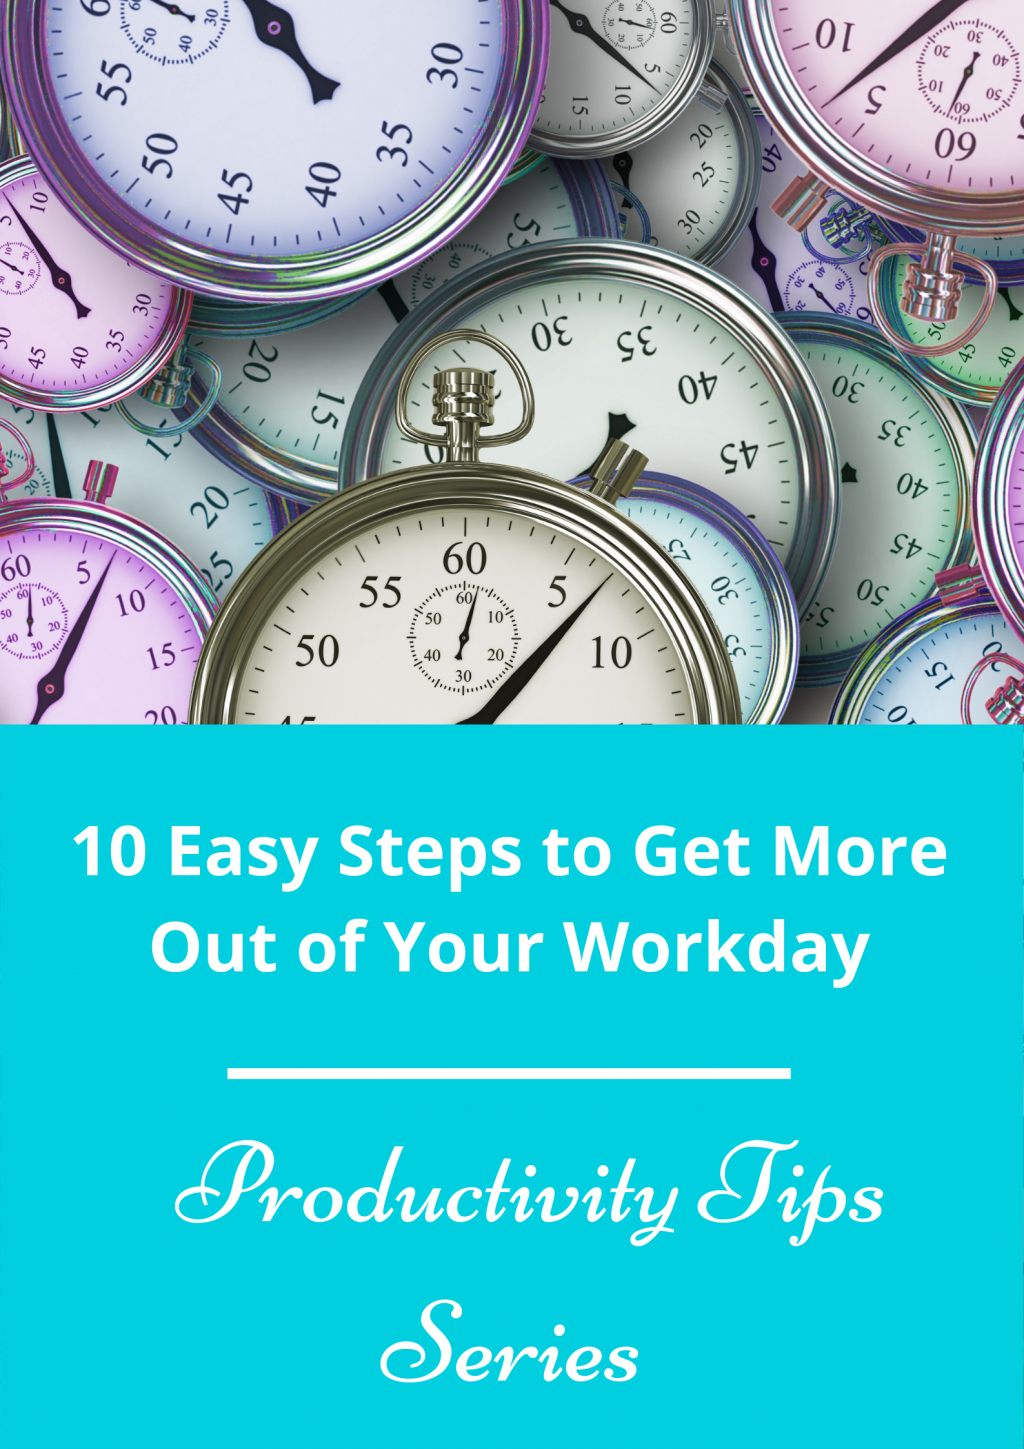 10 Easy Steps to Get More Out of Your Workday